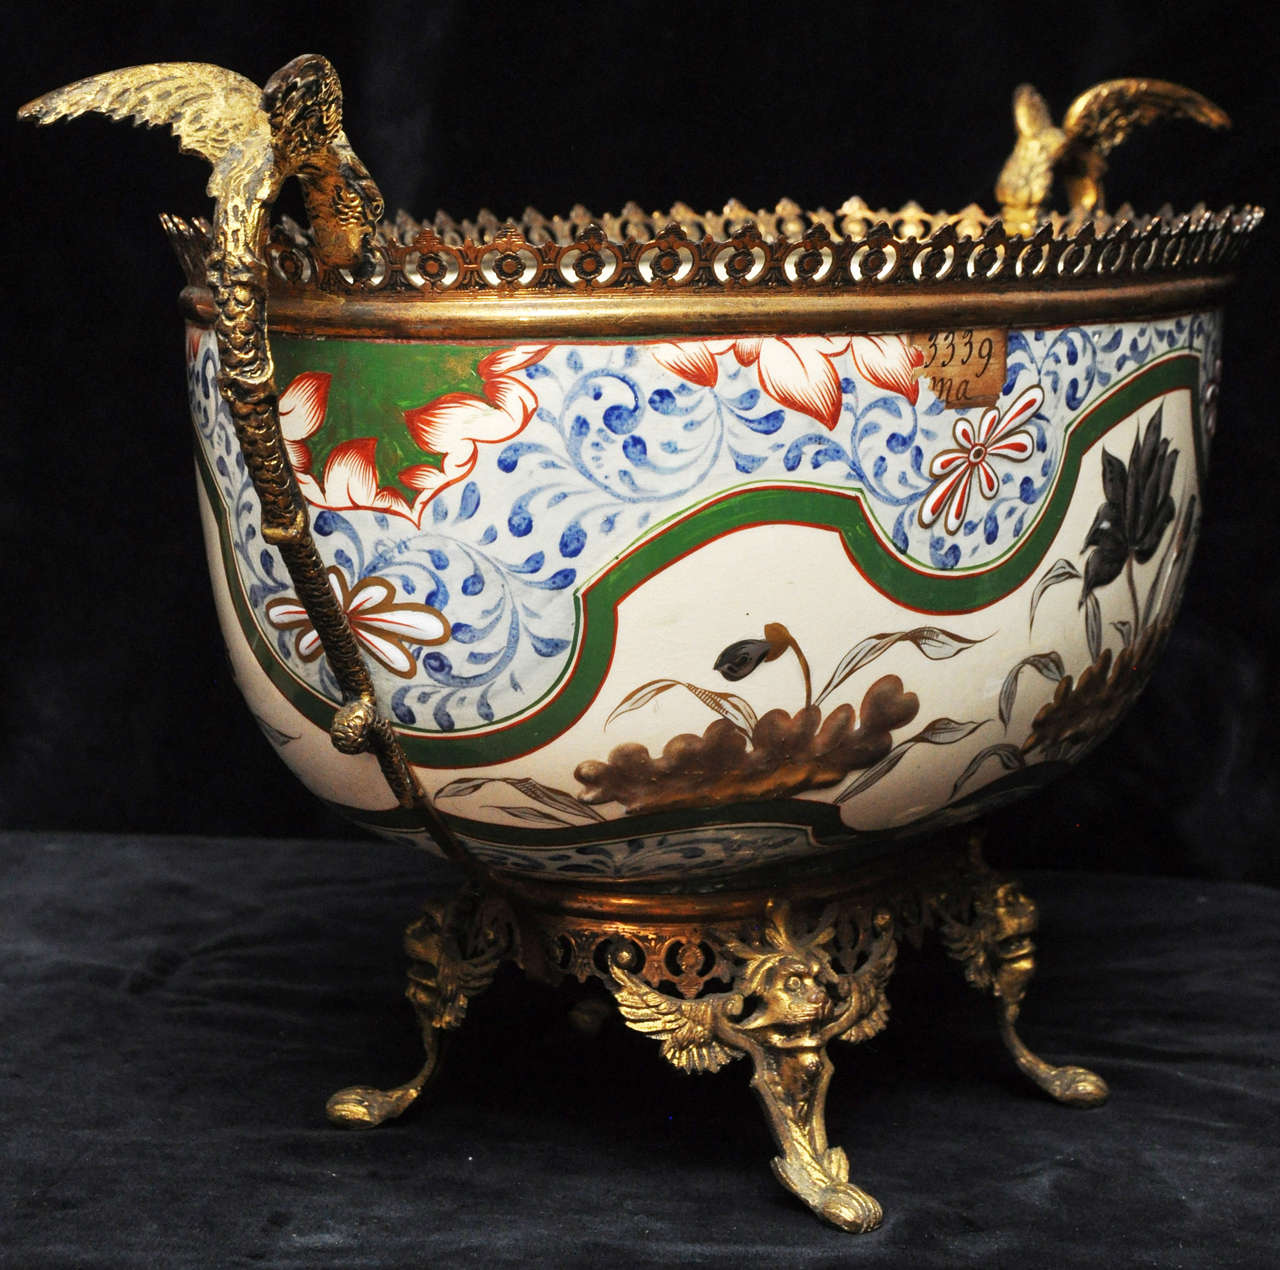 French Antique Porcelain and Gilt Bronze Center Bowl For Sale 4